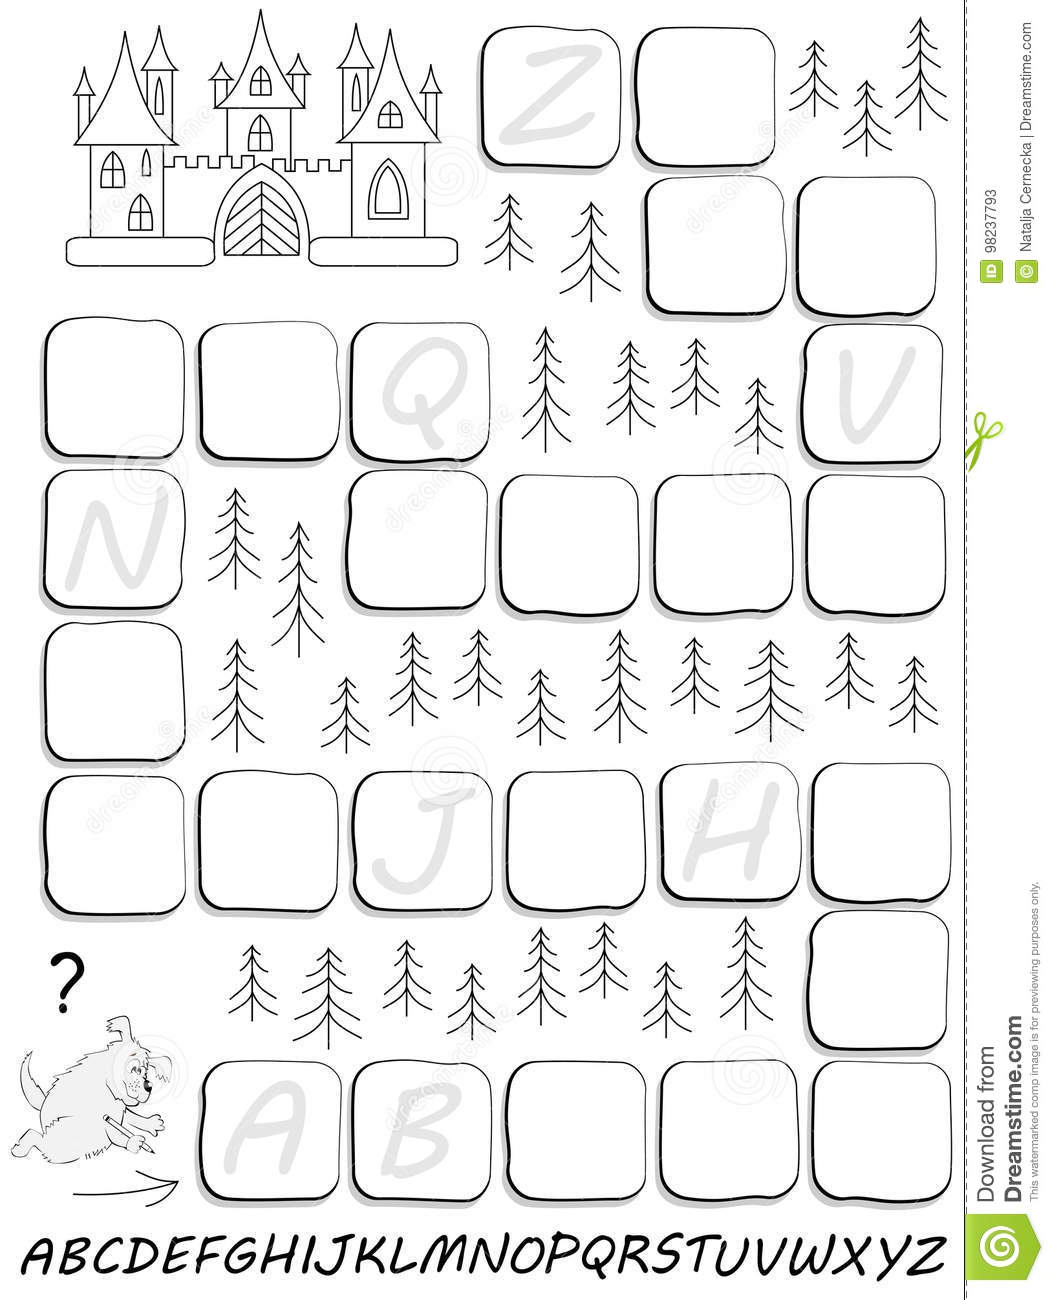 Black And White Worksheet With Exercise For Study English